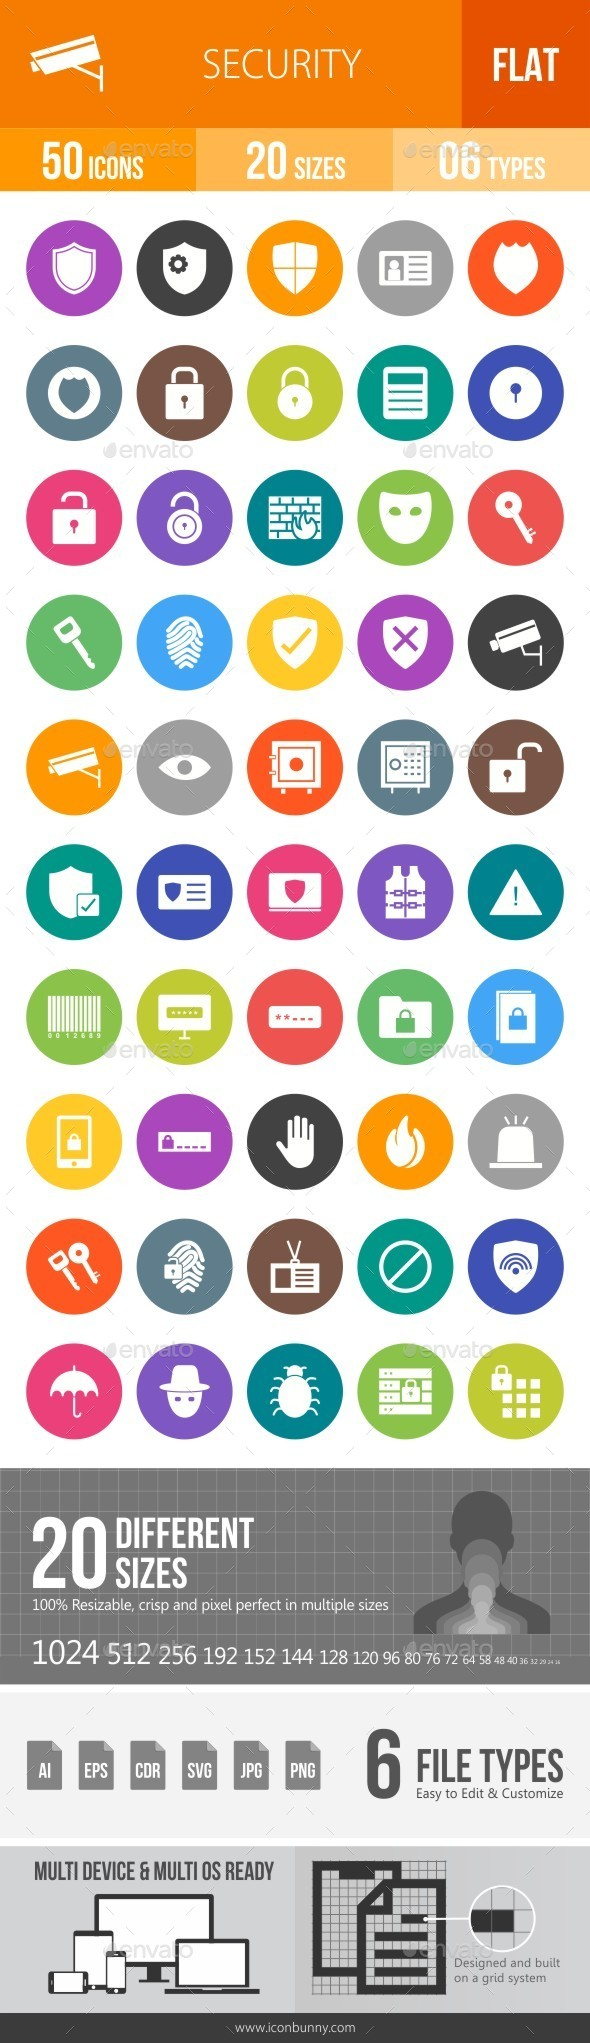 Security Flat Round Icons - Icons